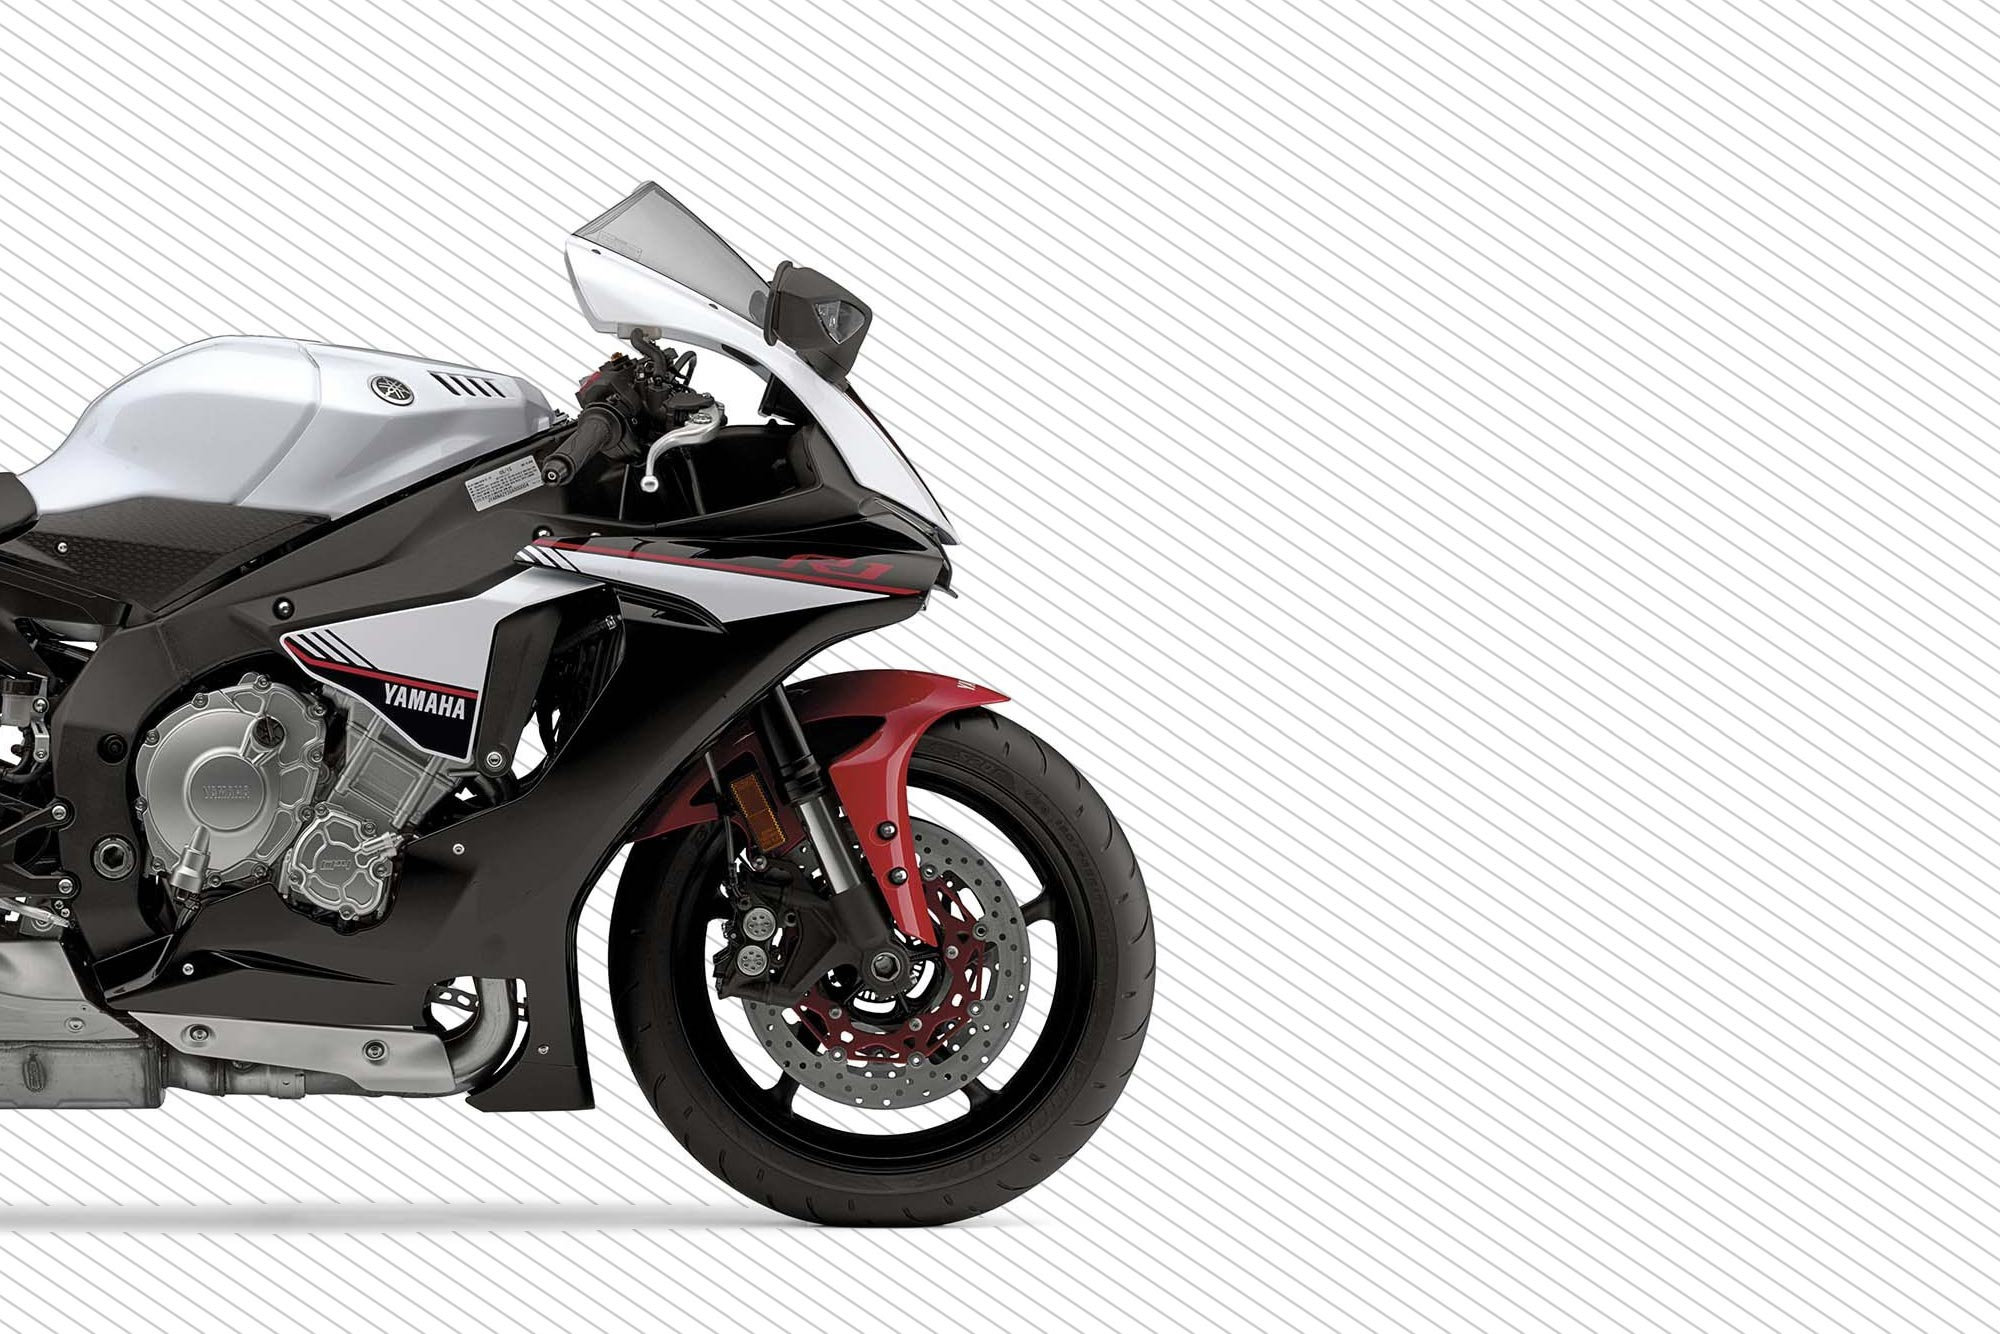 This Week's Yamaha YZF-R1 Rumor, Bride of Chuckie - Asphalt